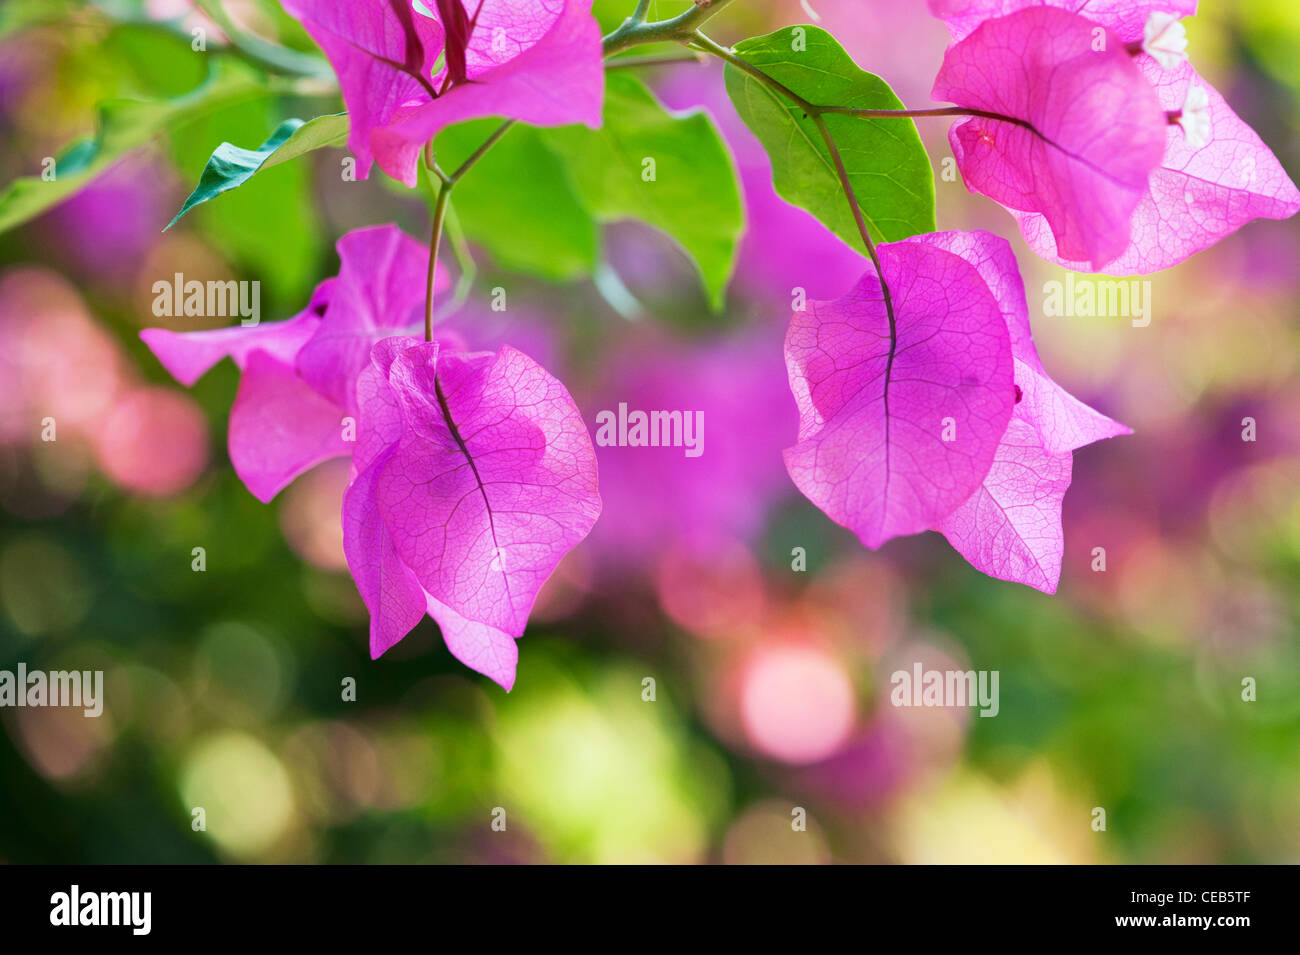 Bougainvillea spectabilis. Great bougainvillea purple bracts. Andhra Pradesh, India - Stock Image